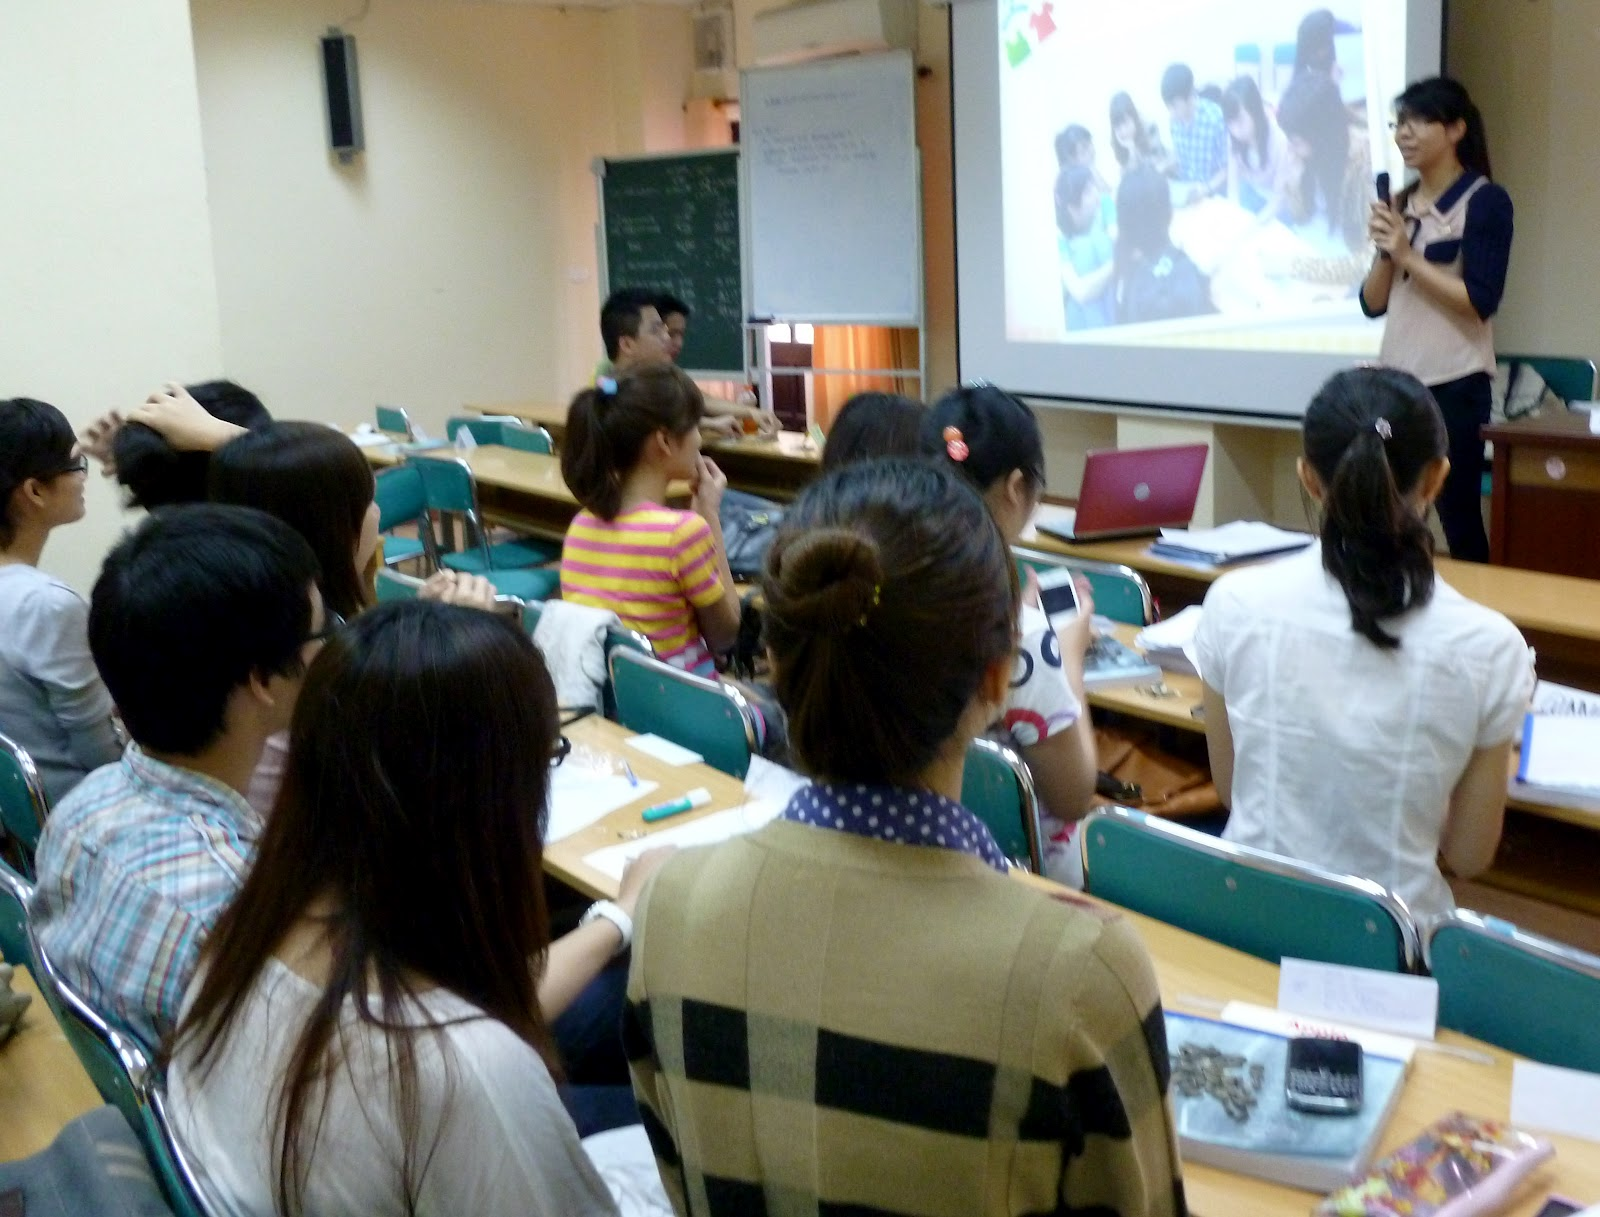 Shirt design course - Here Are Photos From The Presentations Of Class Visk2011a Which Meets From 8 00 Am 9 20 Am